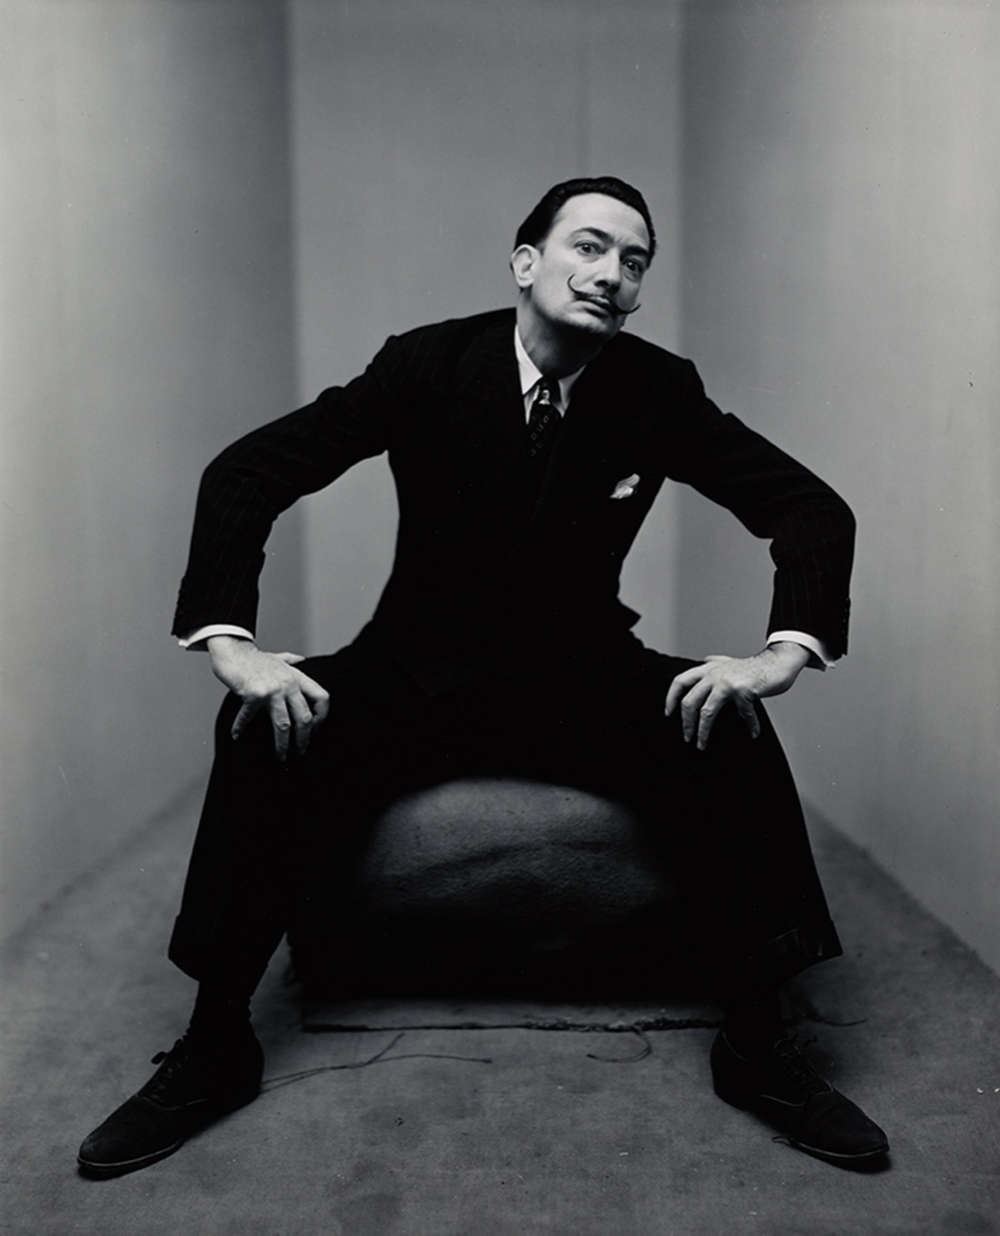 Irving Penn, Salvador Dalí, New York, 1947. Unique vintage gelatin silver print, made 1947 Image Dimensions: 24,4 x 19,7 cm (9,625 x 7,75 in) © The Irving Penn Foundation